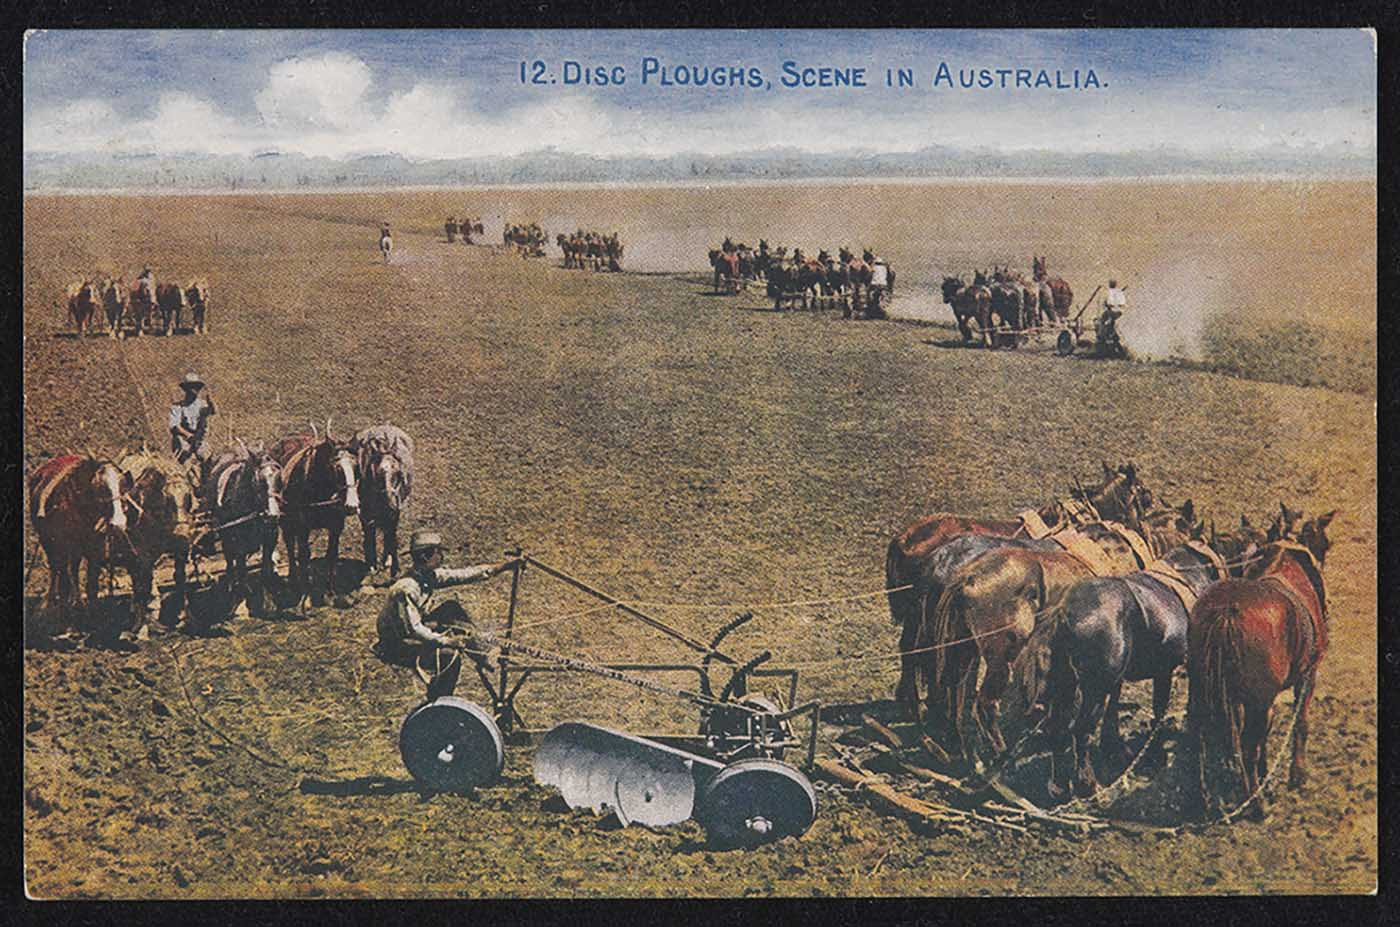 Colour image showing a man sitting on a plough, which is being pulled by five horses. Four other plough teams are visible in the distance, across a paddock. - click to view larger image